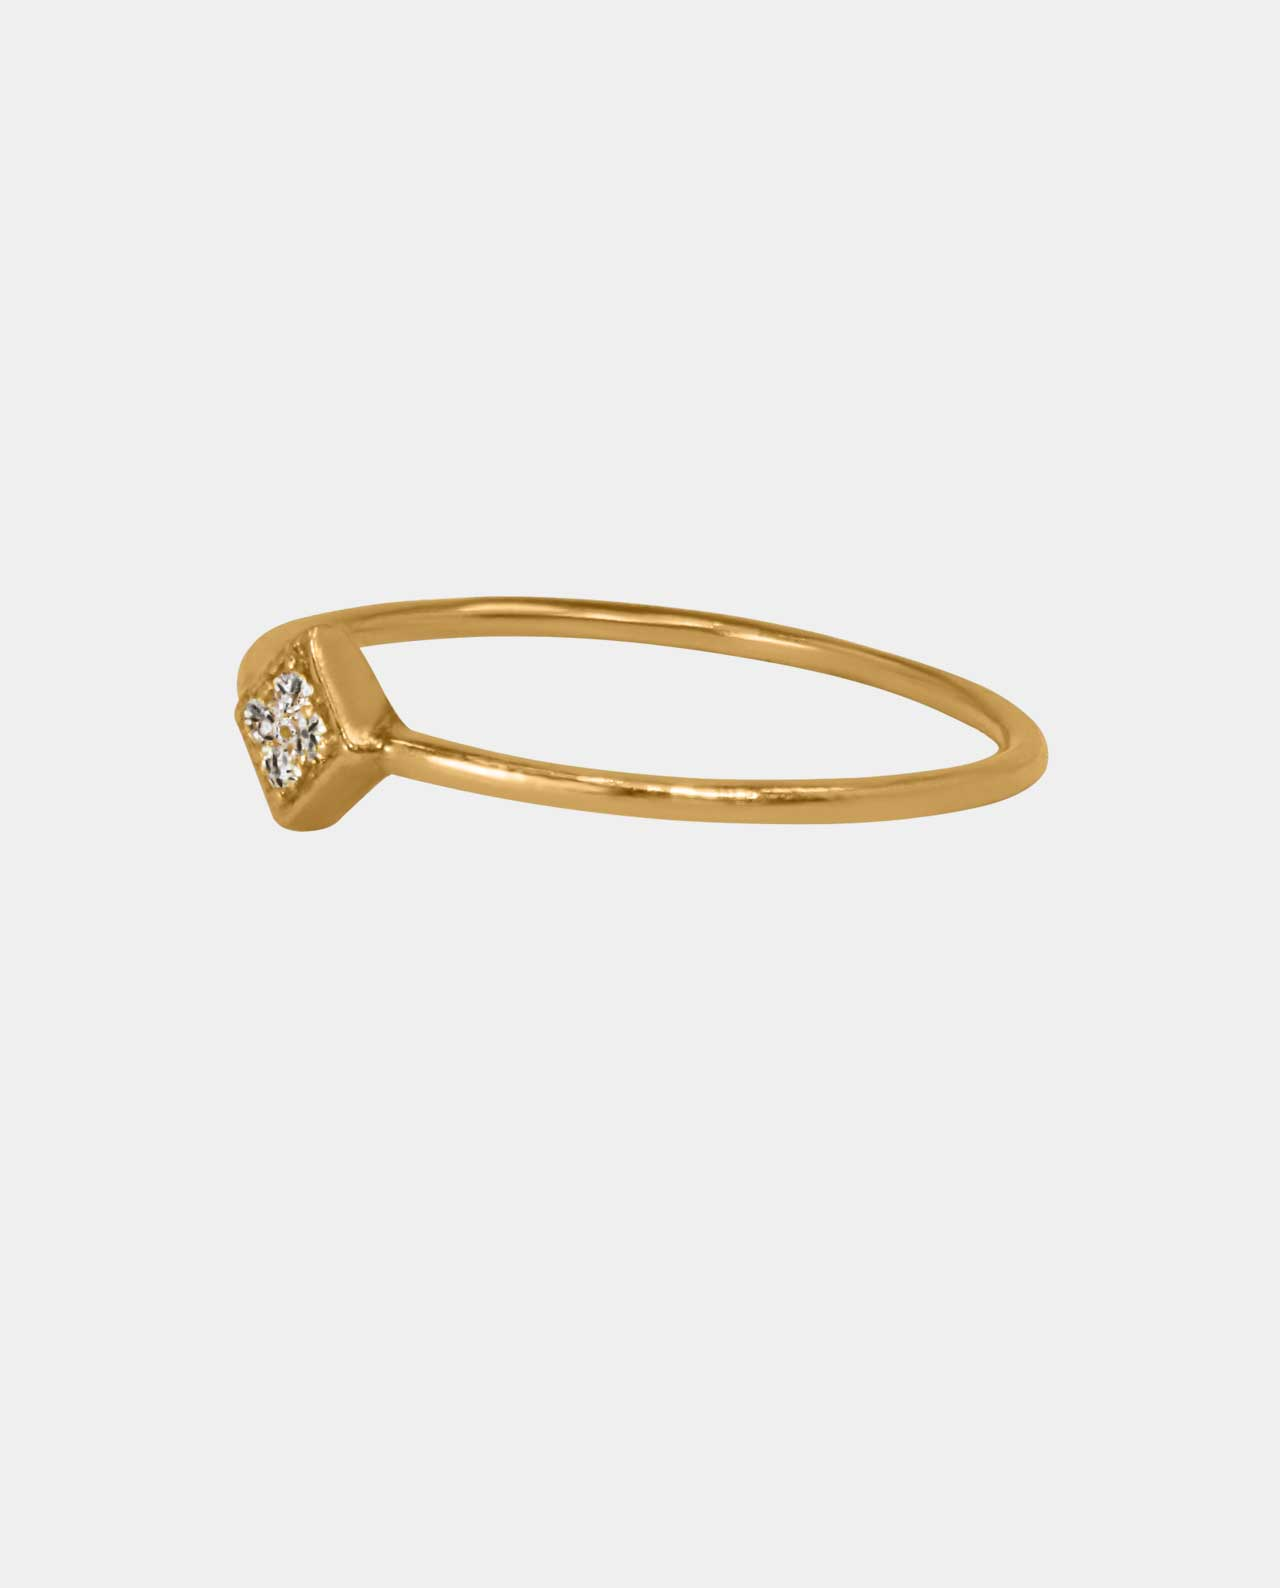 Beautiful ring set with four sparkling zirconias in an original design that radiates a premium piece of jewelry in interplay with the golden colour of gold